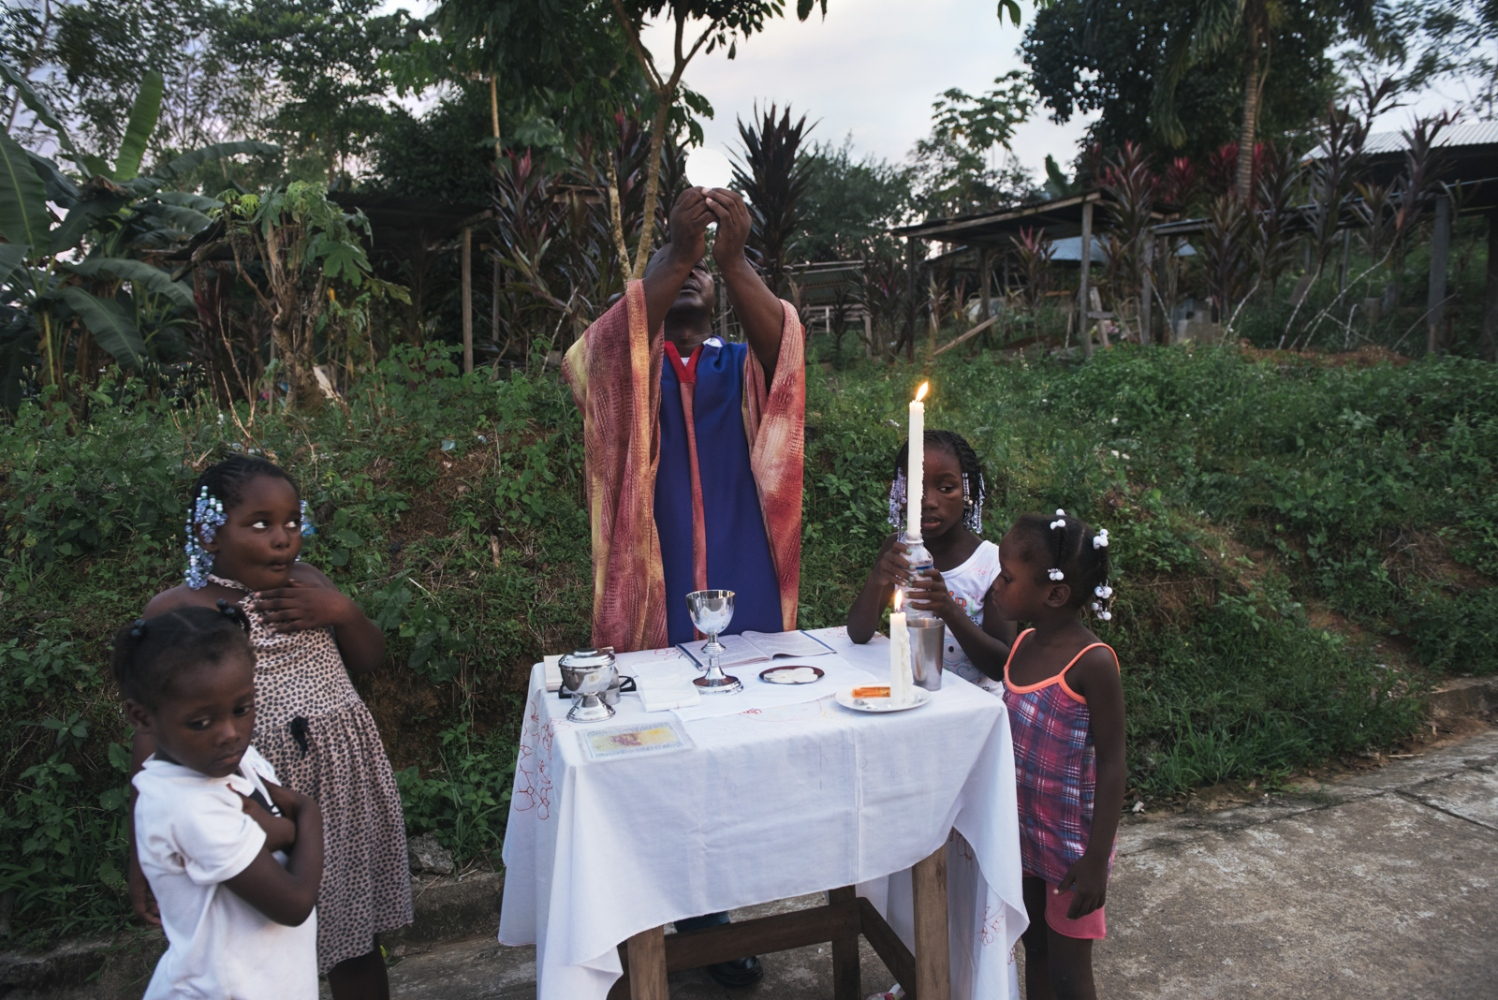 The Chocó, as much of Colombia is majoritively Christian. Years ago the church played a strong role in the life of Old Bellavista. After the massacre and with the passage of time the community started to attend less to church as it did not effectively reconstruct the social knit of the community. However, each year, a mass happens in front of the graveyard in remembrance of all of those who have died.